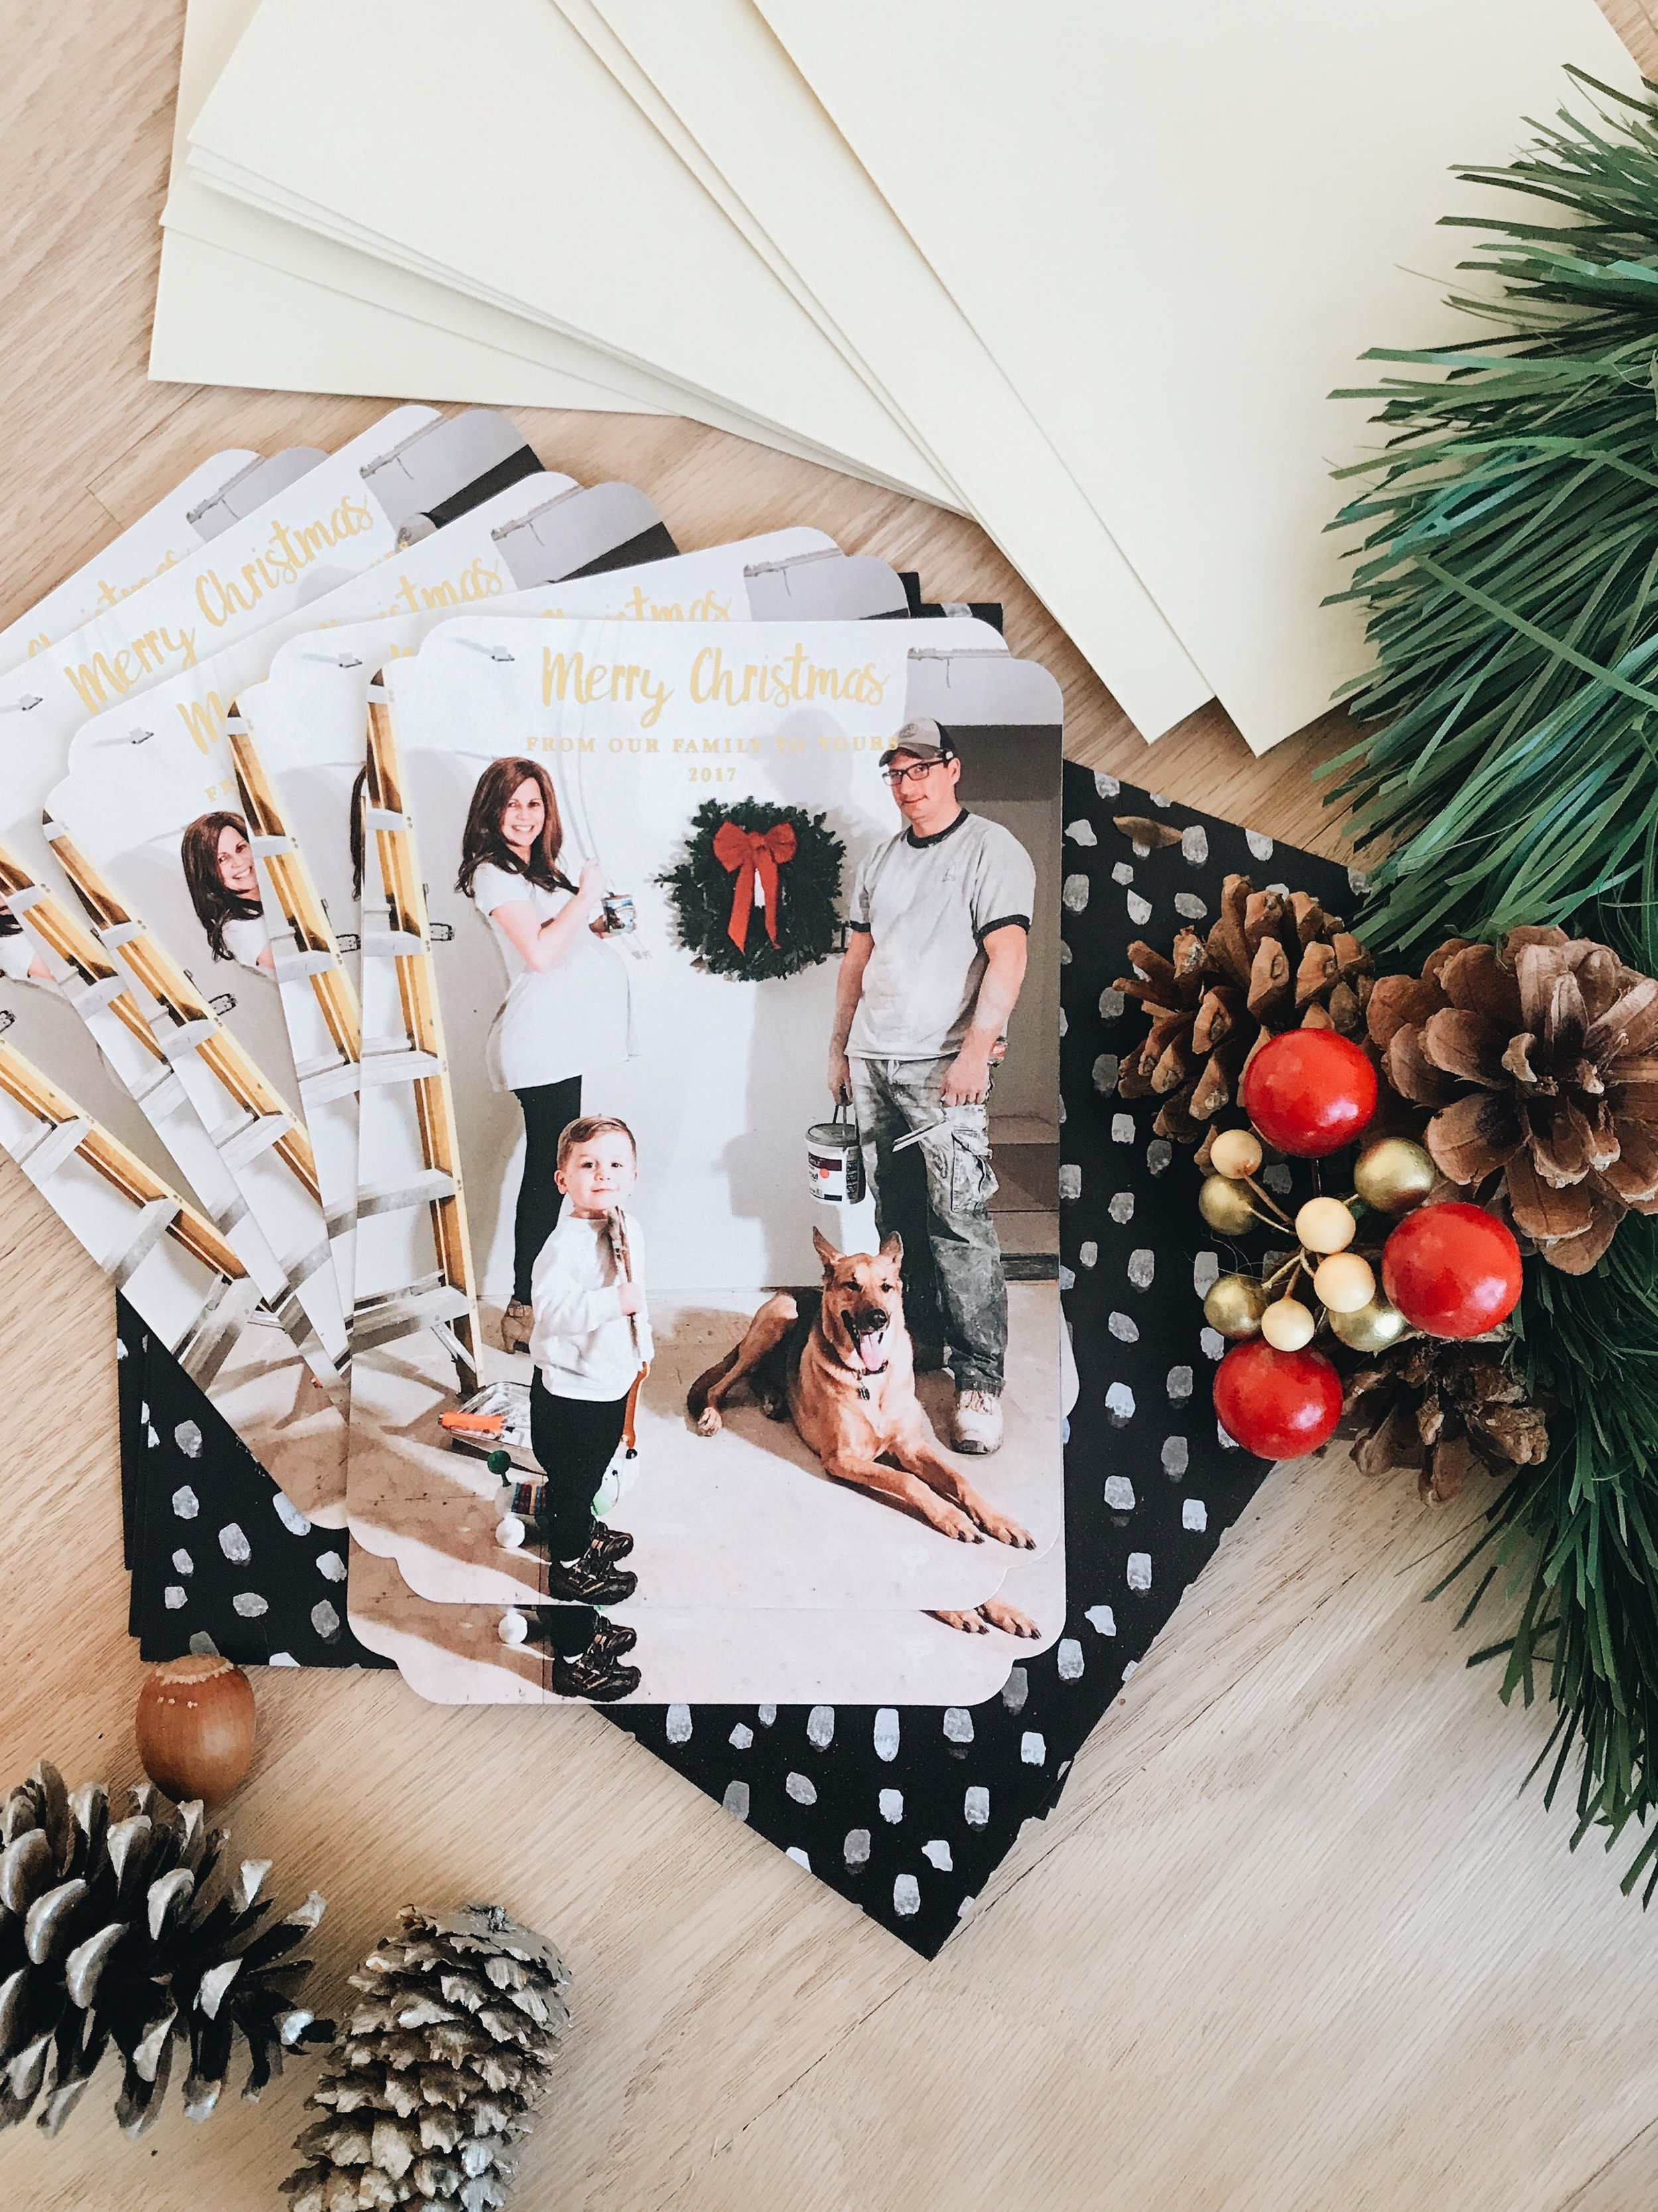 How To Create An Amazing Holiday Card Using Pretty Polite Boutique. How to stage a photo card for the holidays.